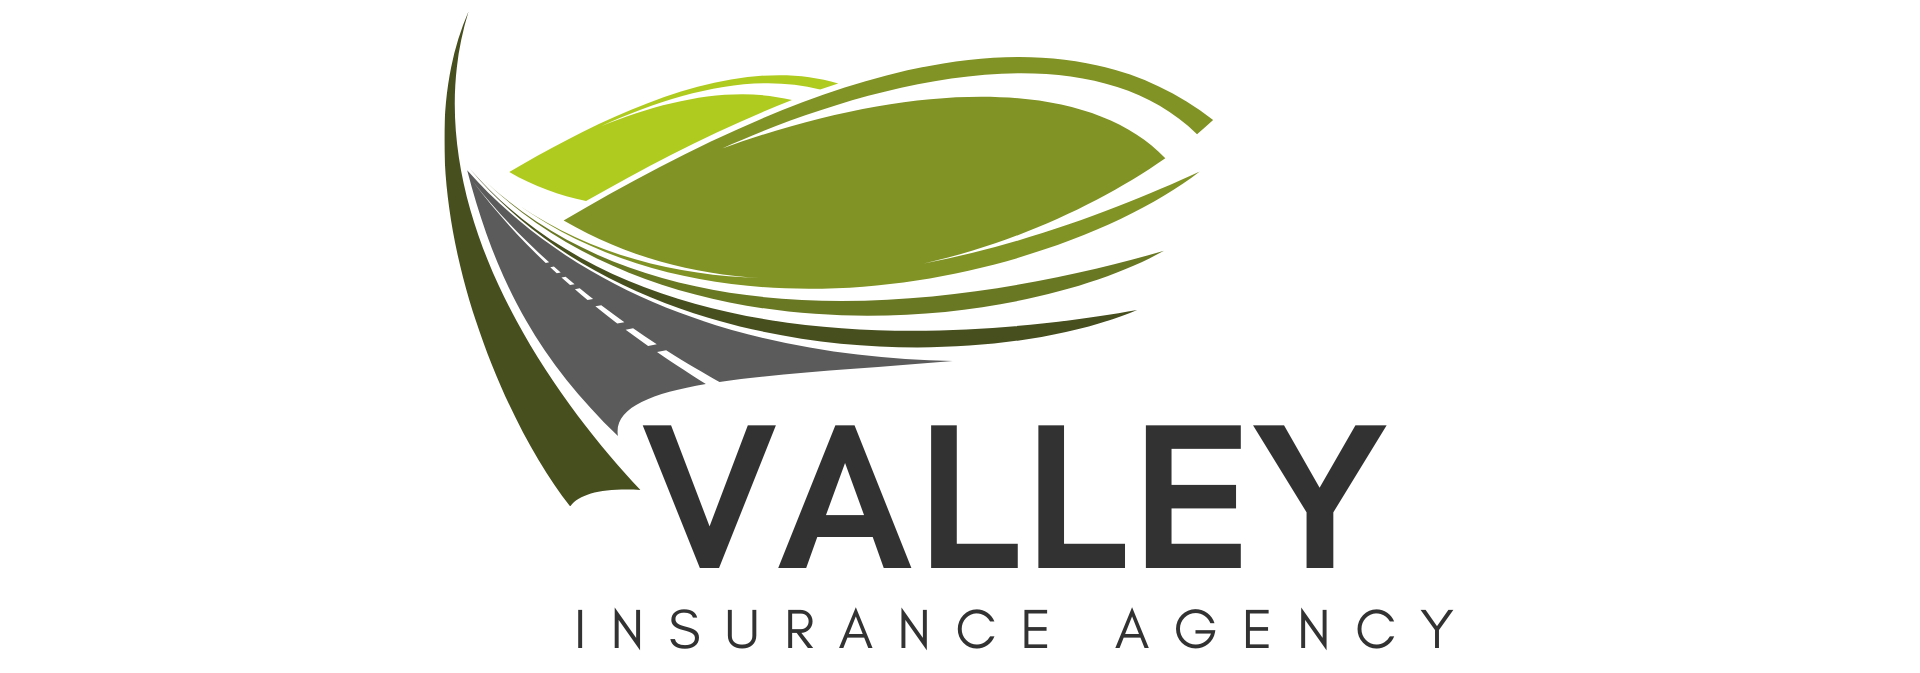 Valley Insurance Agency